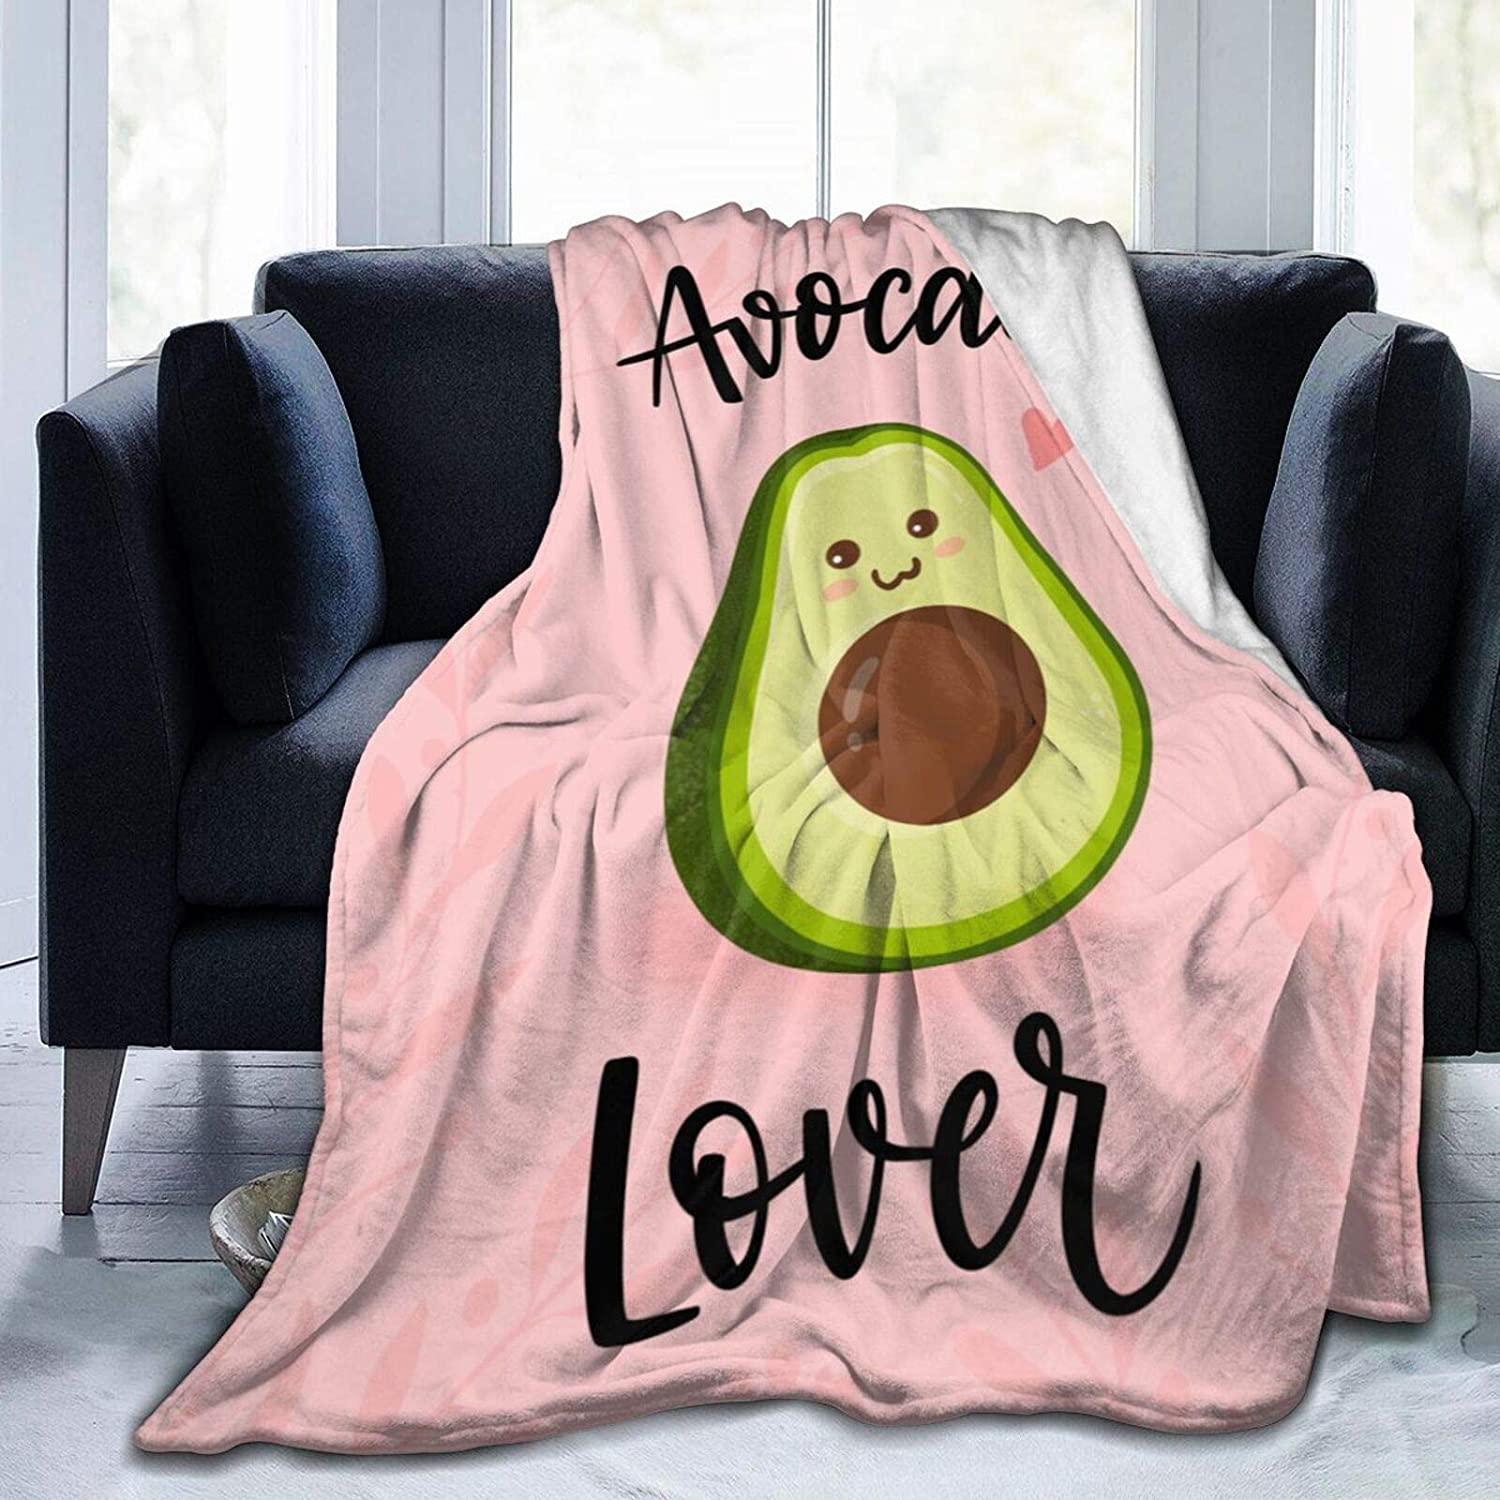 BOLDROLE Cartoon Avocado Blanket, Cute Cartoon Food Fruit Throw Blankets, Soft and Comfortable Giant Round Beach Blanket for Kids and Adults